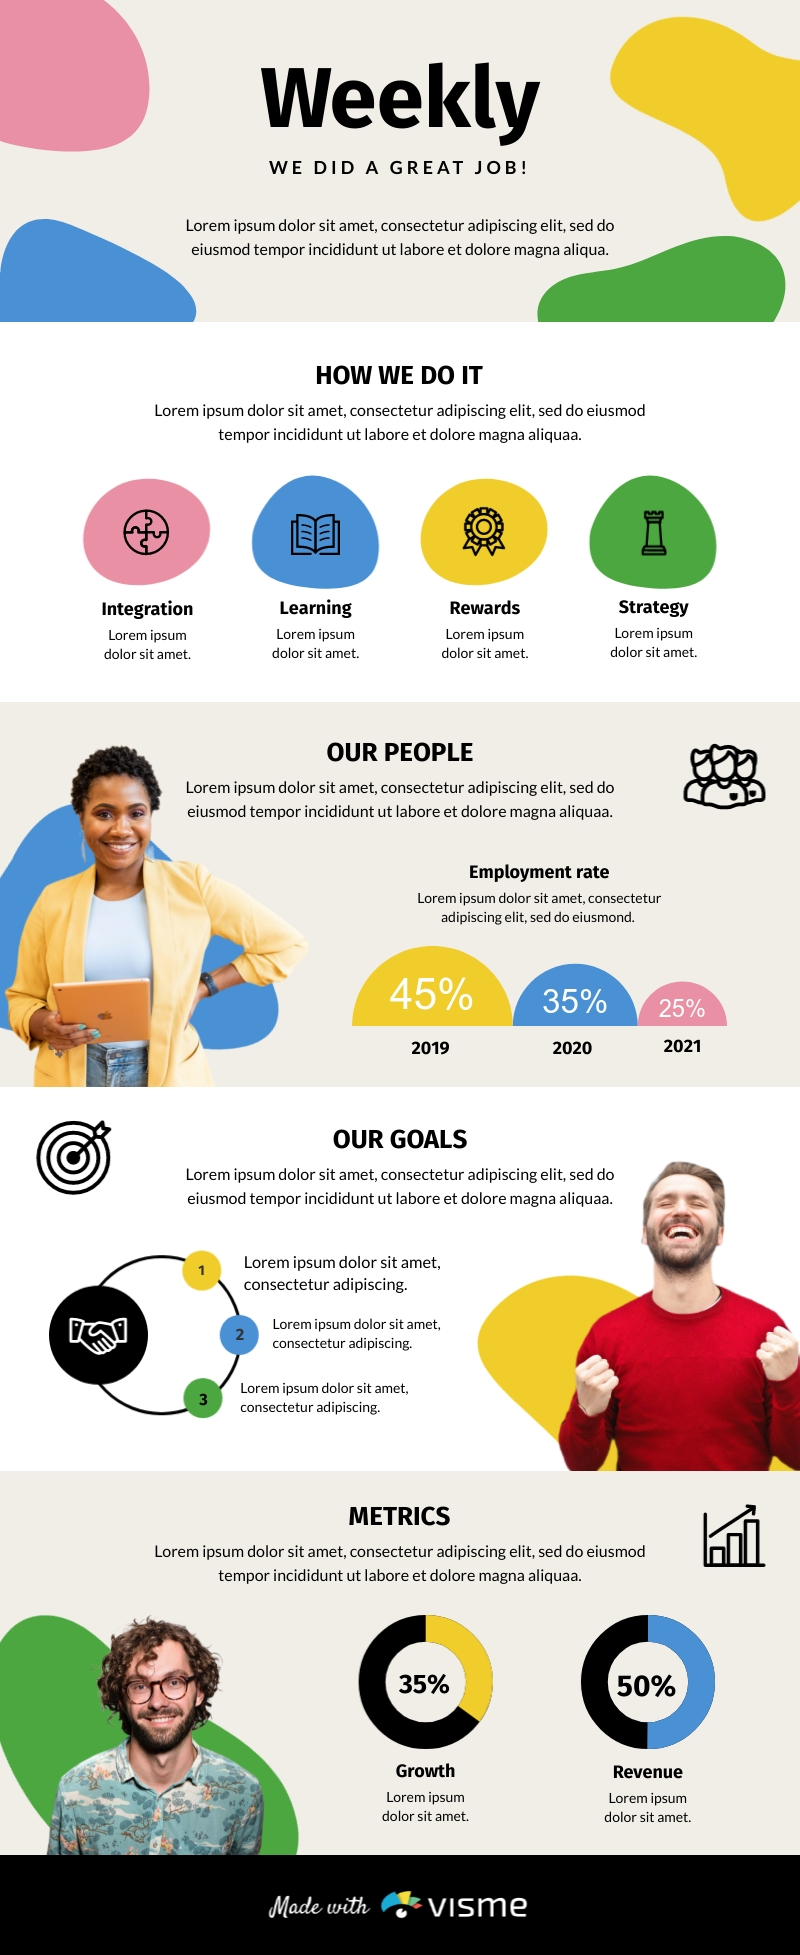 Weekly Jobs - Infographic Template